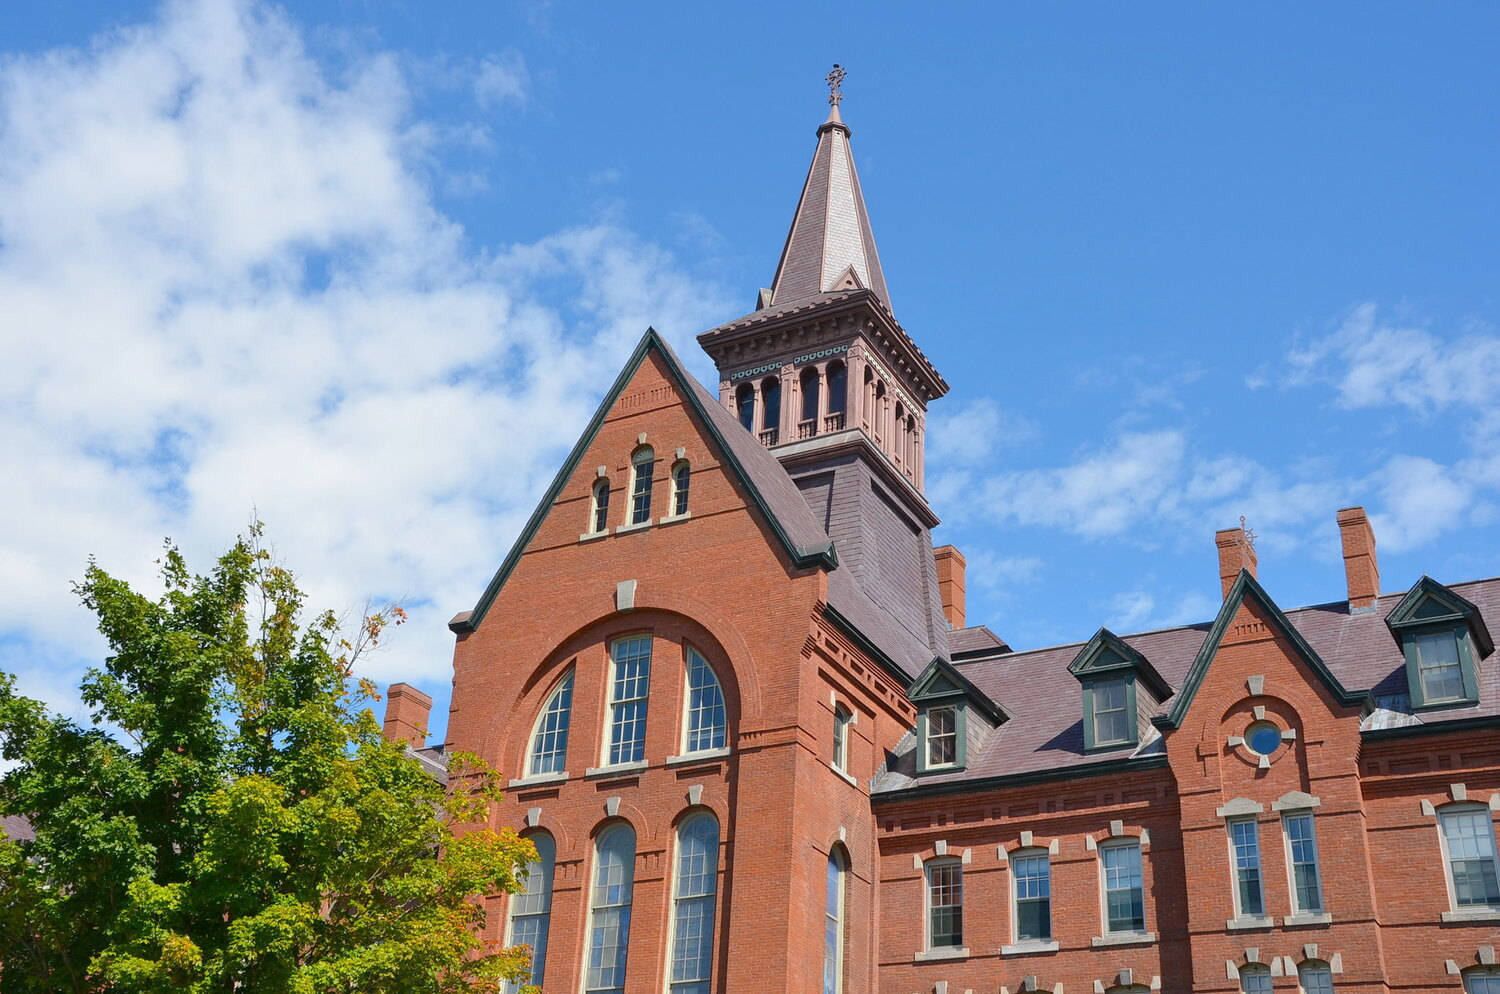 Uvm Calendar 2022.Students Accuse Uvm Of Not Adequately Addressing Campus Sexual Misconduct Ncpr News